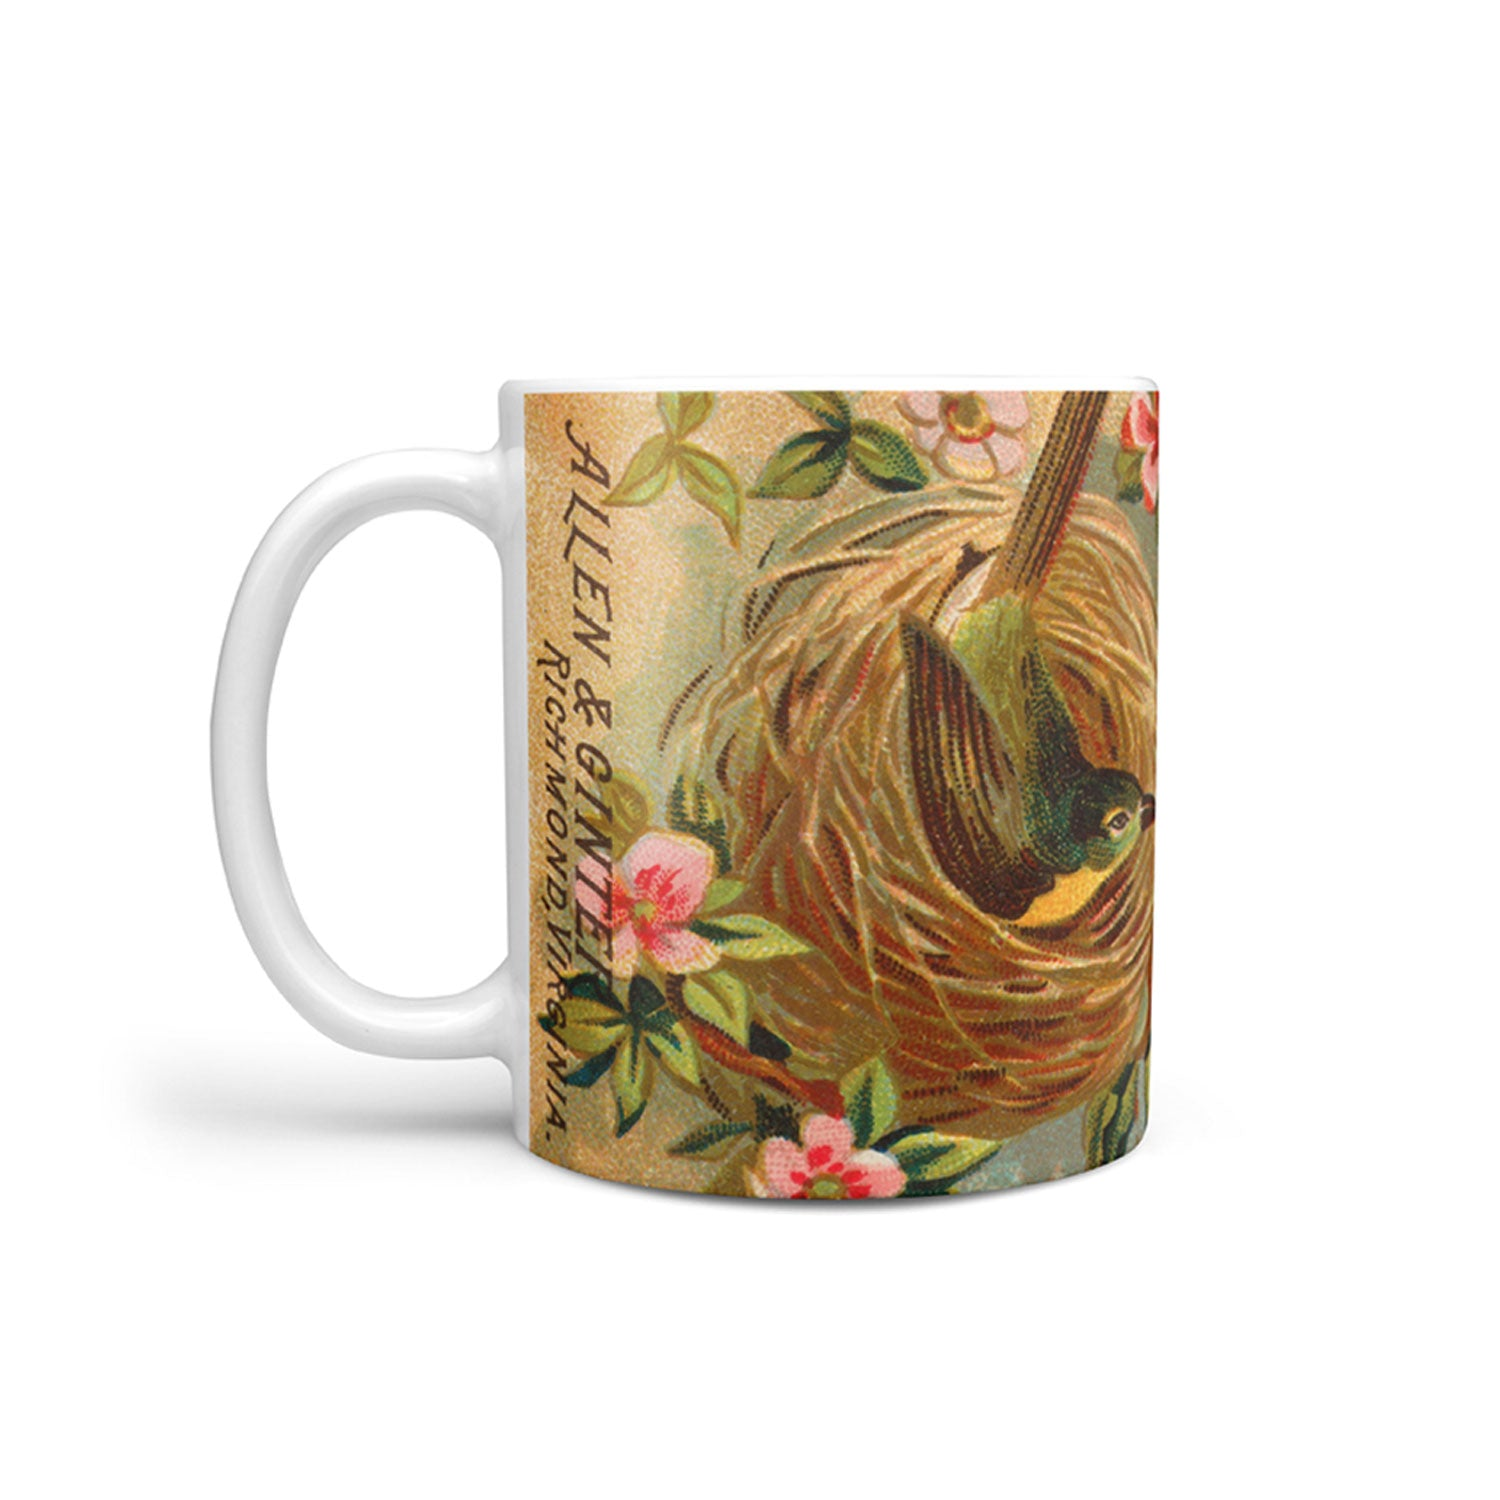 mug with a vintage yellow breasted chat bird illustration